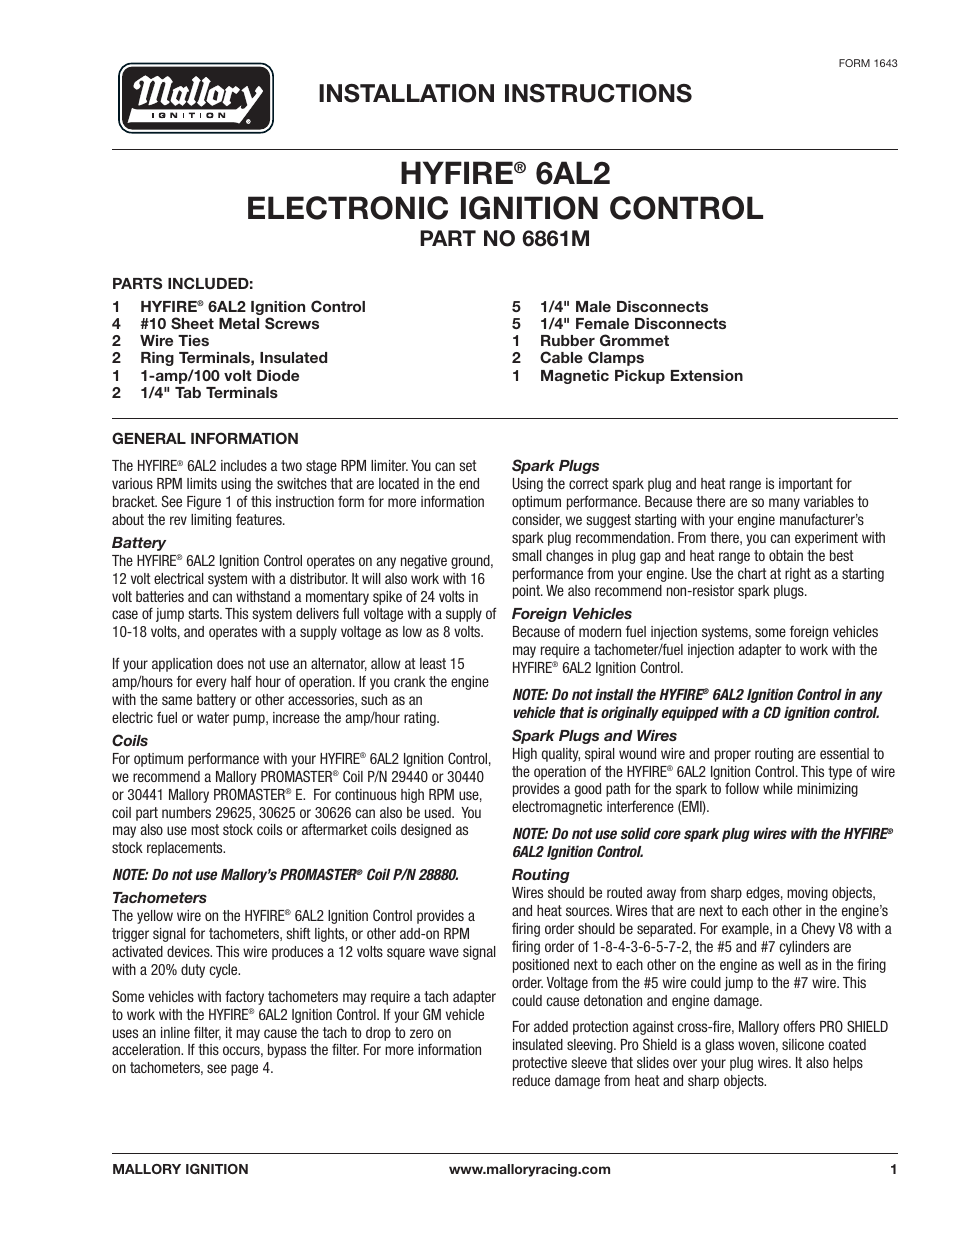 mallory ignition mallory hyfire 6al2 electronic ignition control 6861m page1 mallory ignition mallory hyfire 6al2 electronic ignition control mallory hyfire 6al wiring diagram at bakdesigns.co